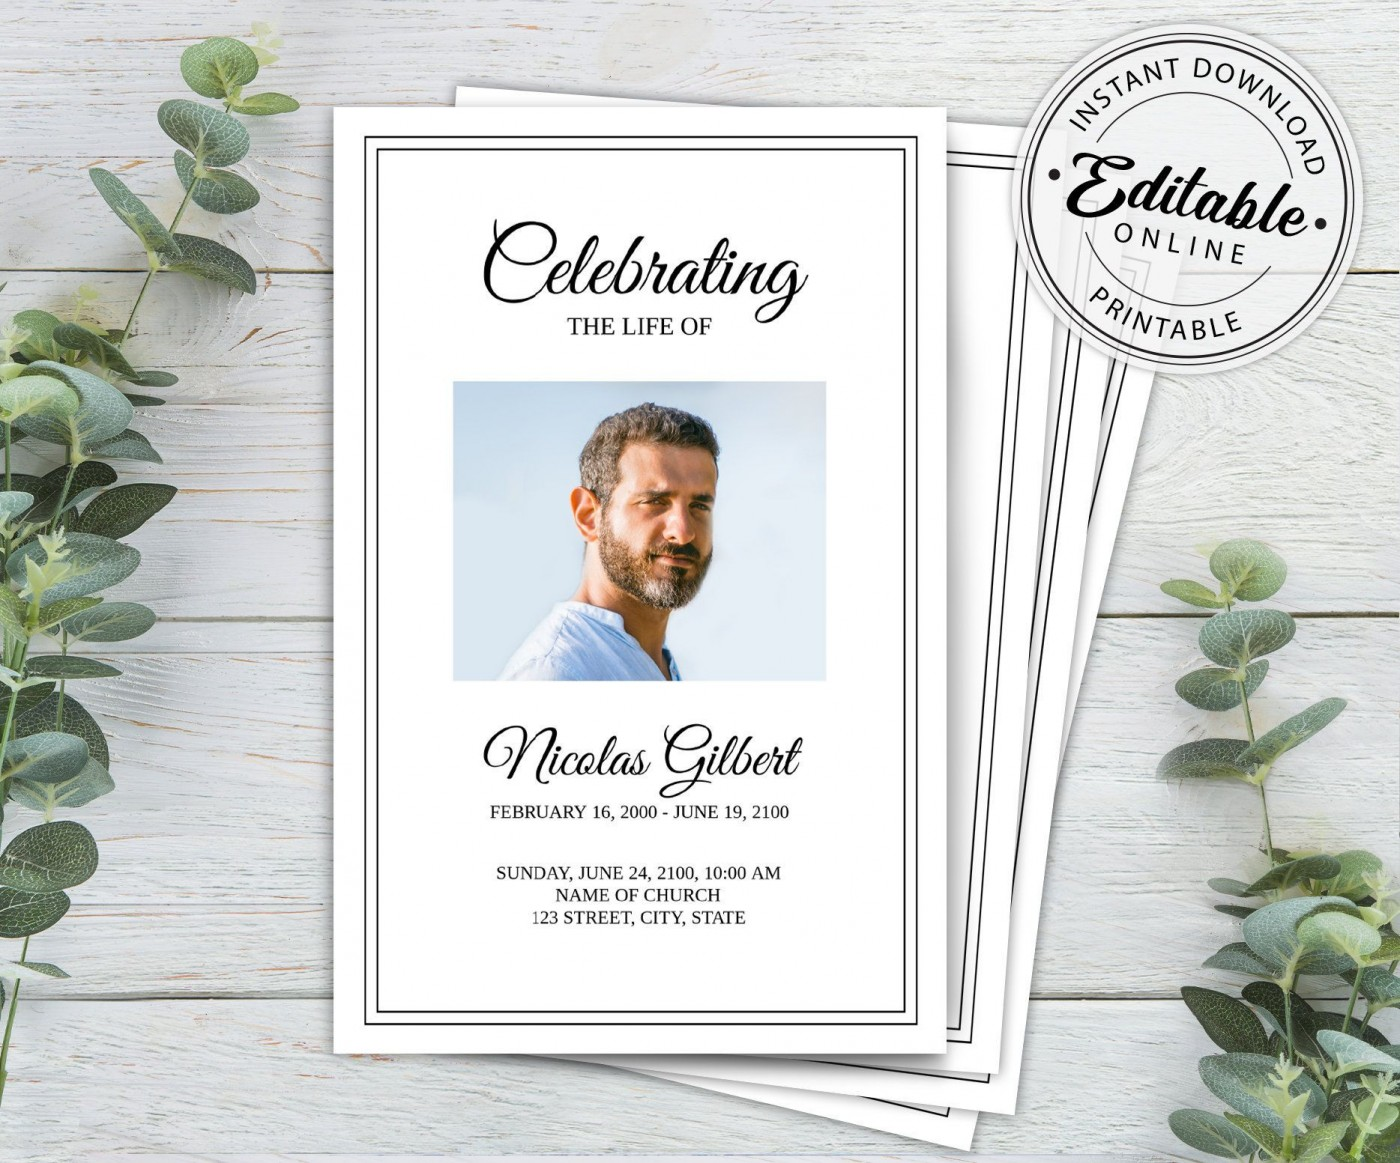 003 Incredible Free Editable Celebration Of Life Program Template High Def 1400